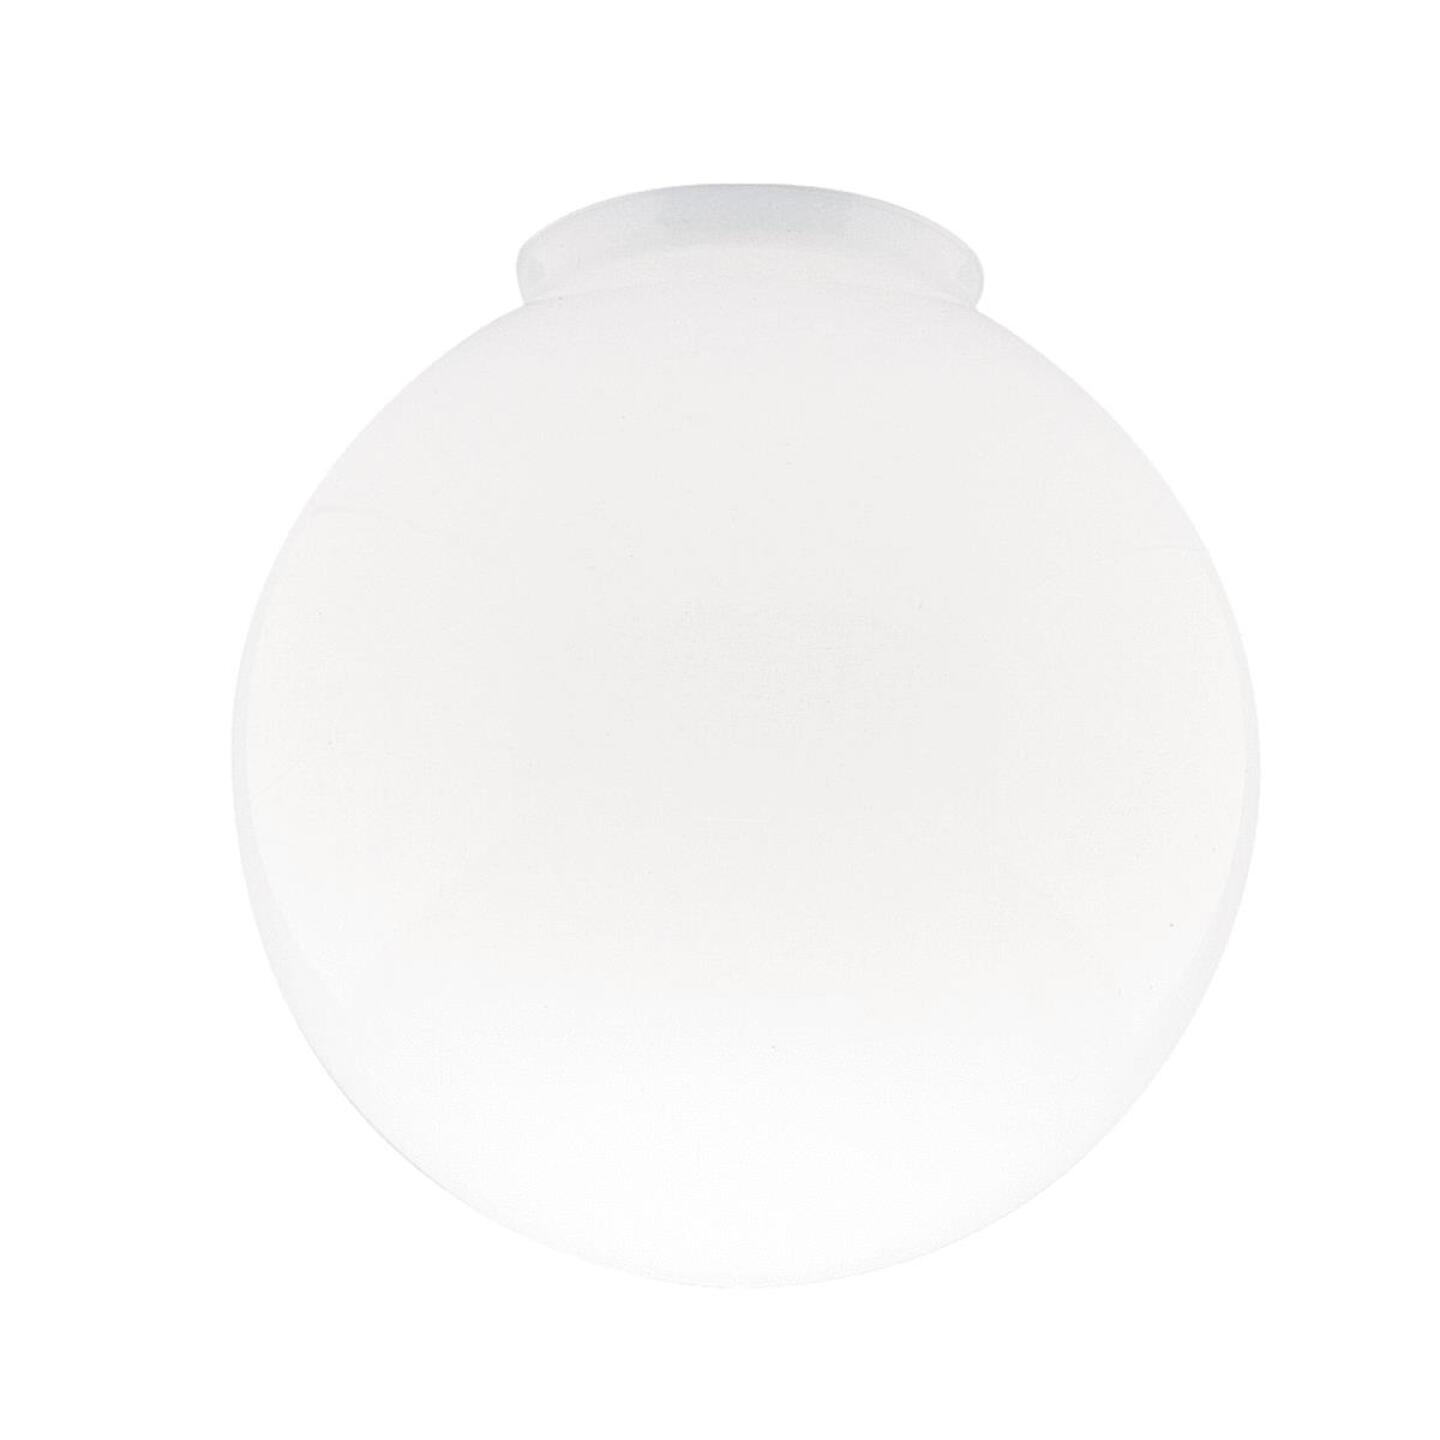 Westinghouse Gloss White 4 In. x 8 In. Ceiling Globe Shade Image 1